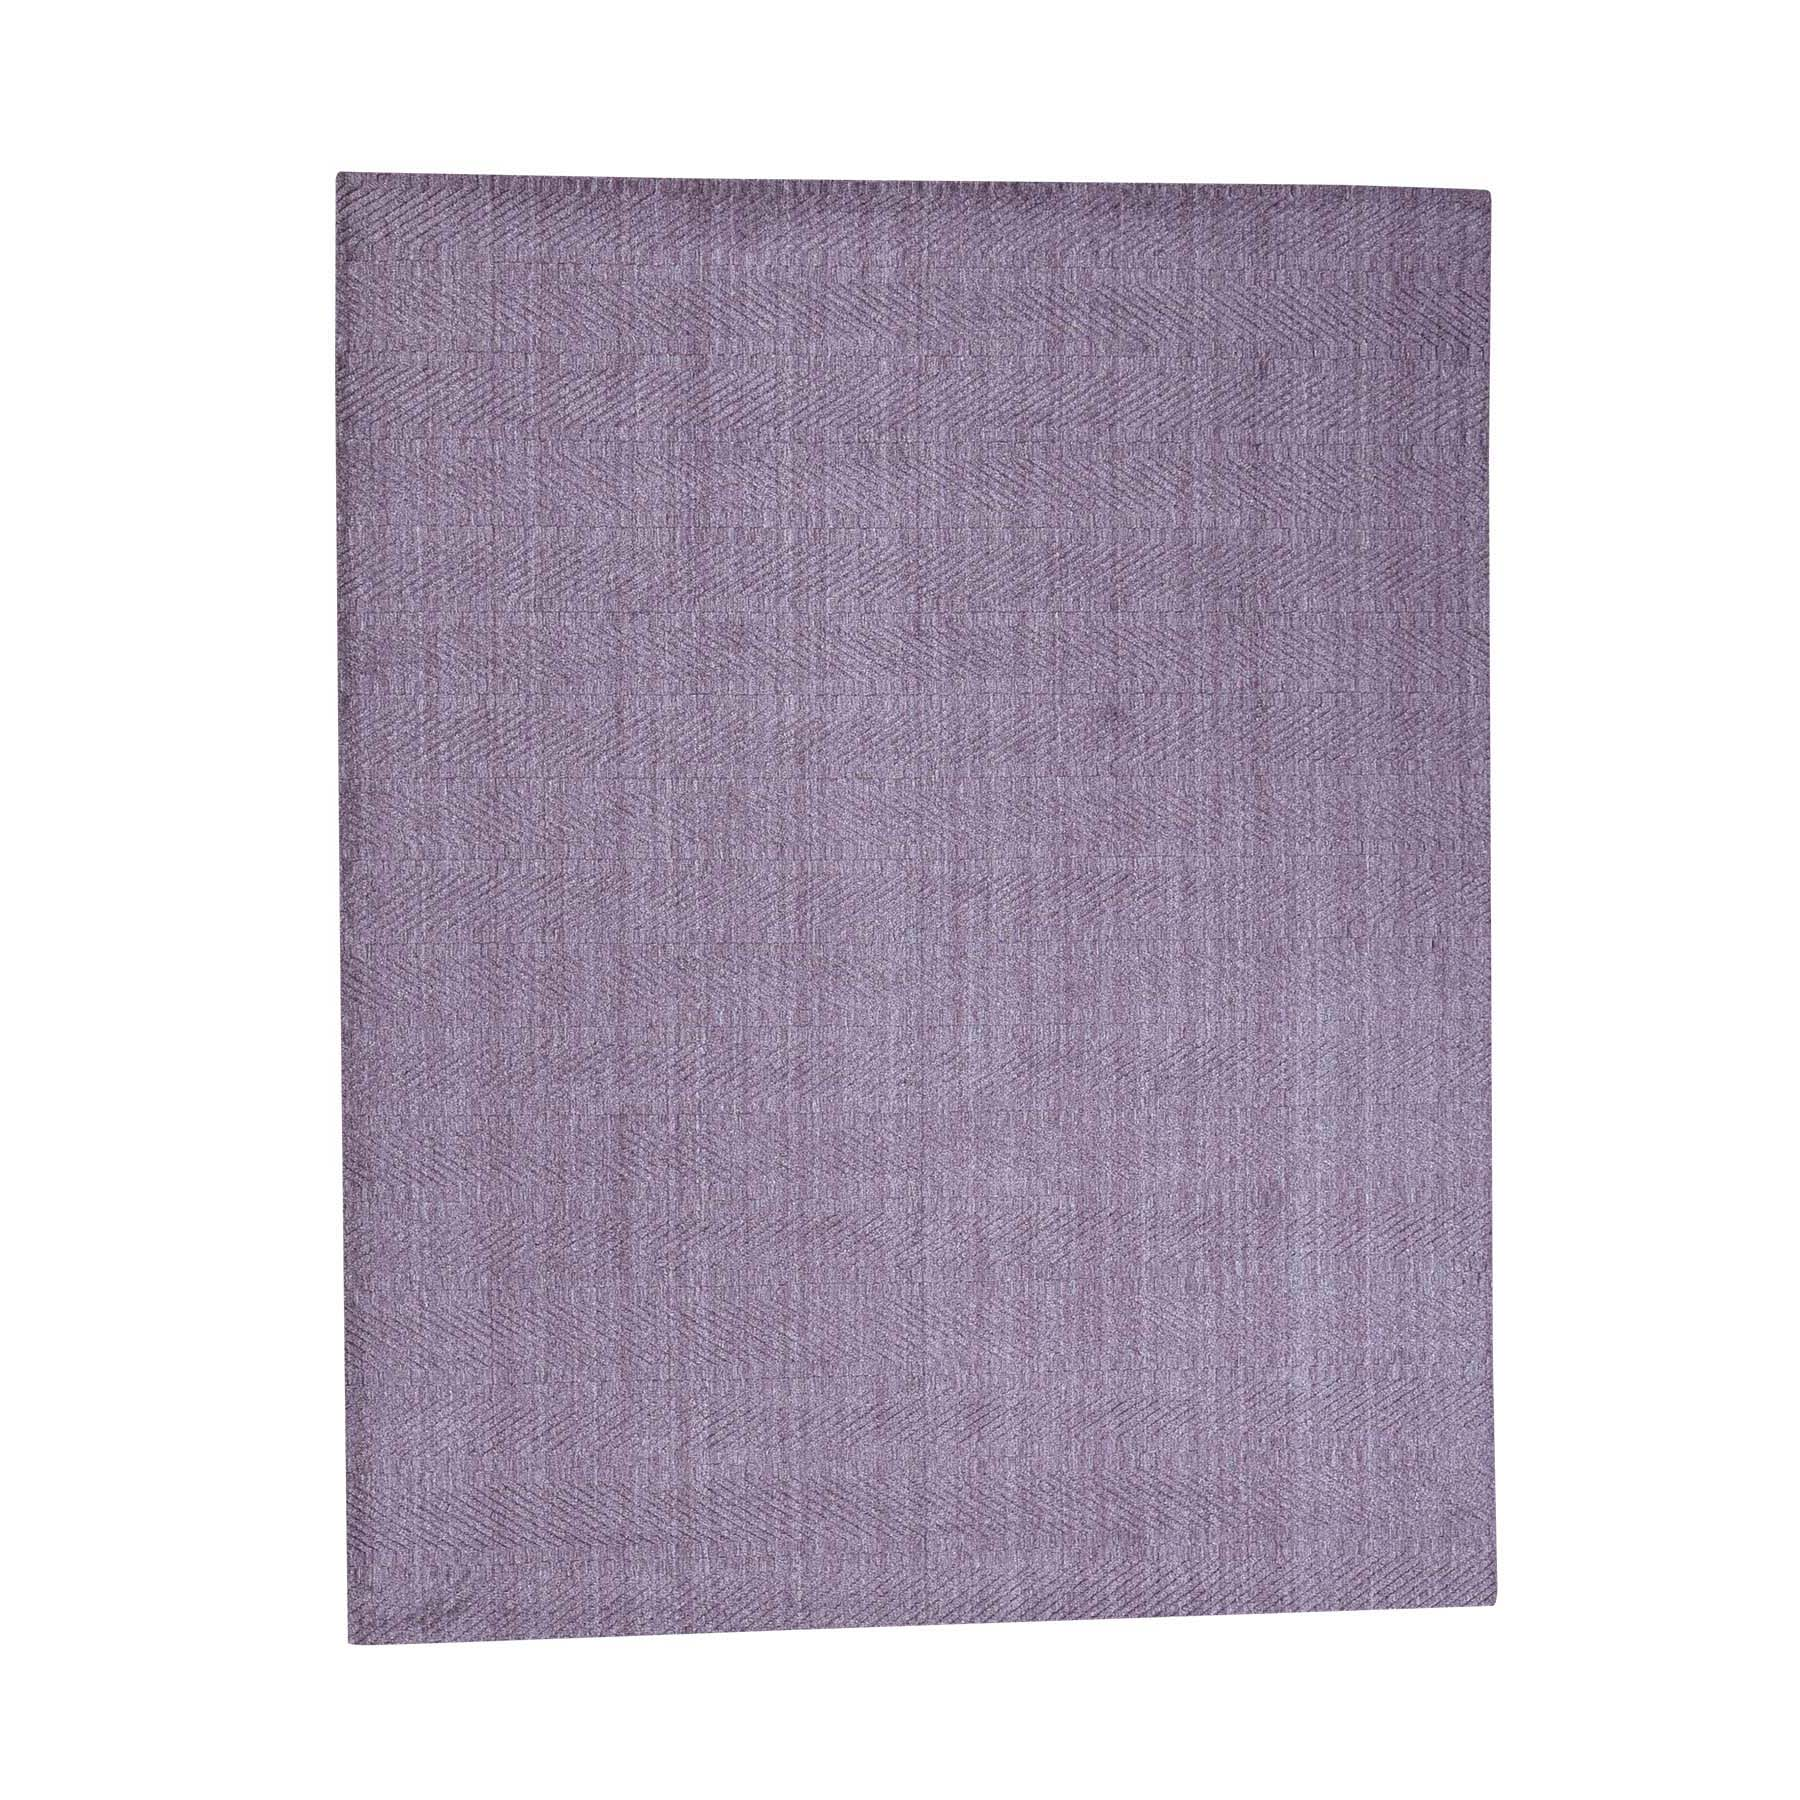 8'X10' Tone On Tone Purple Hand-Loomed Pure Wool Oriental Rug moac98a0